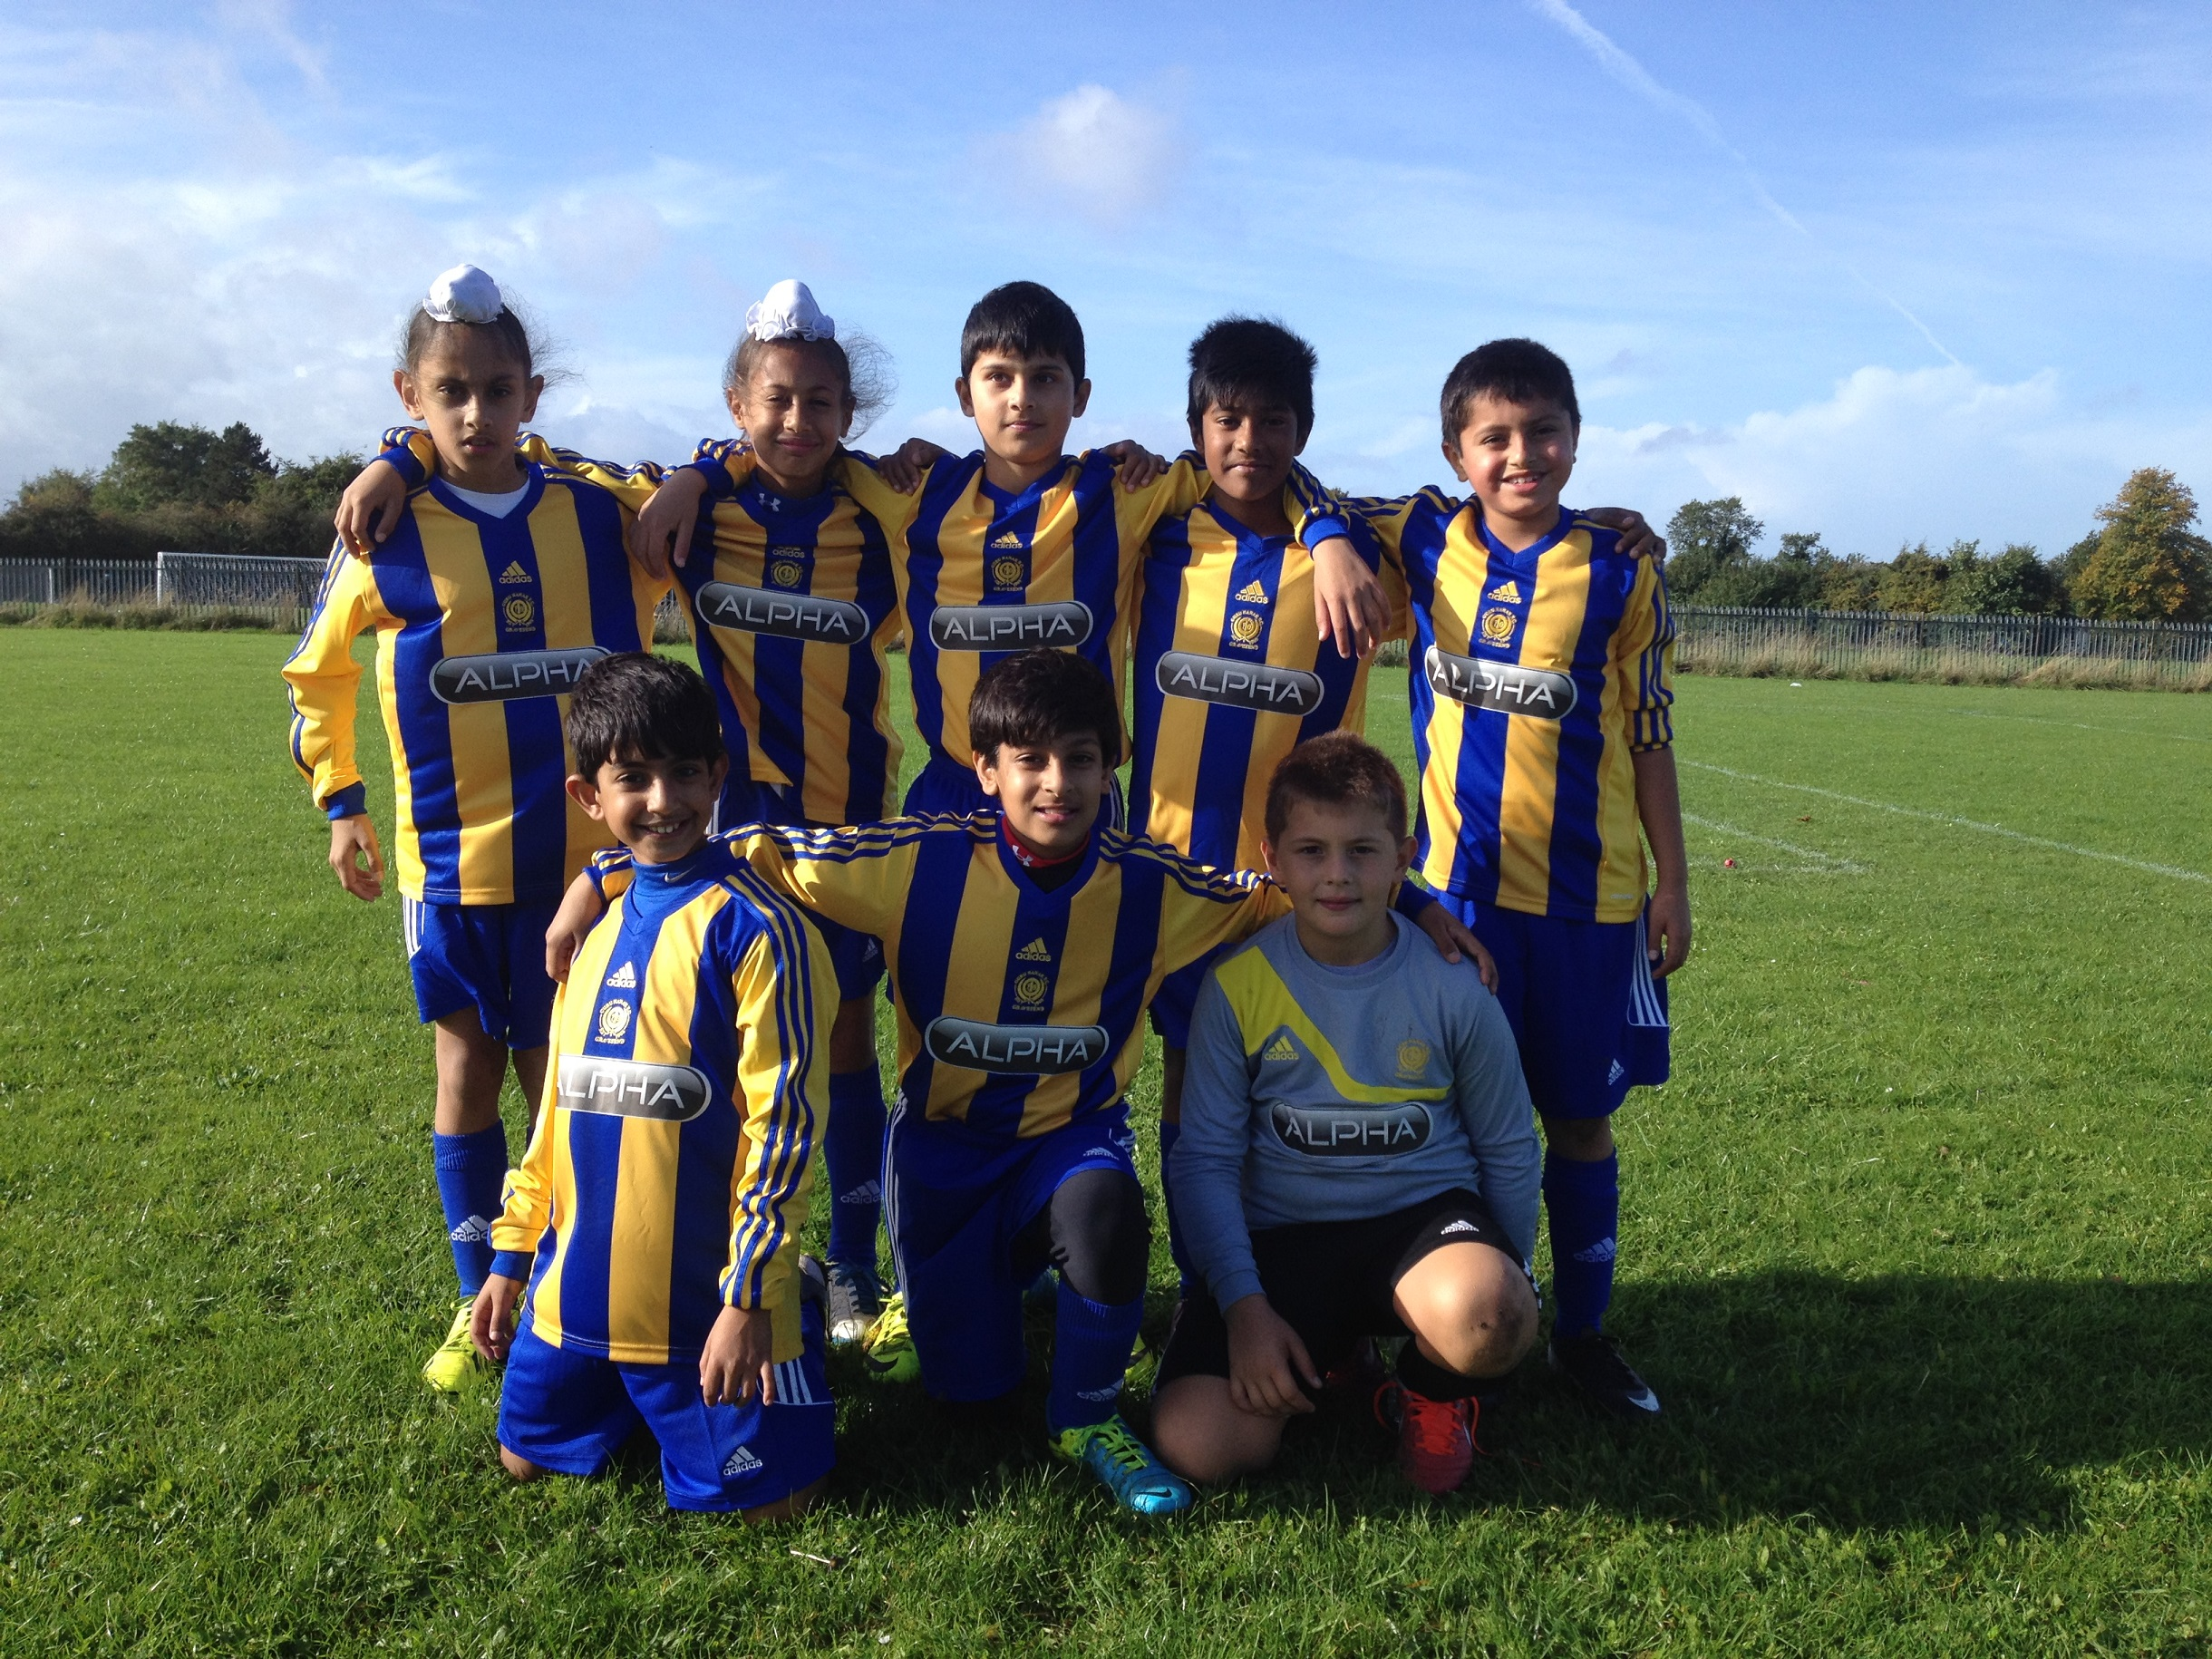 Under 10s Yellow 2013-14 Season